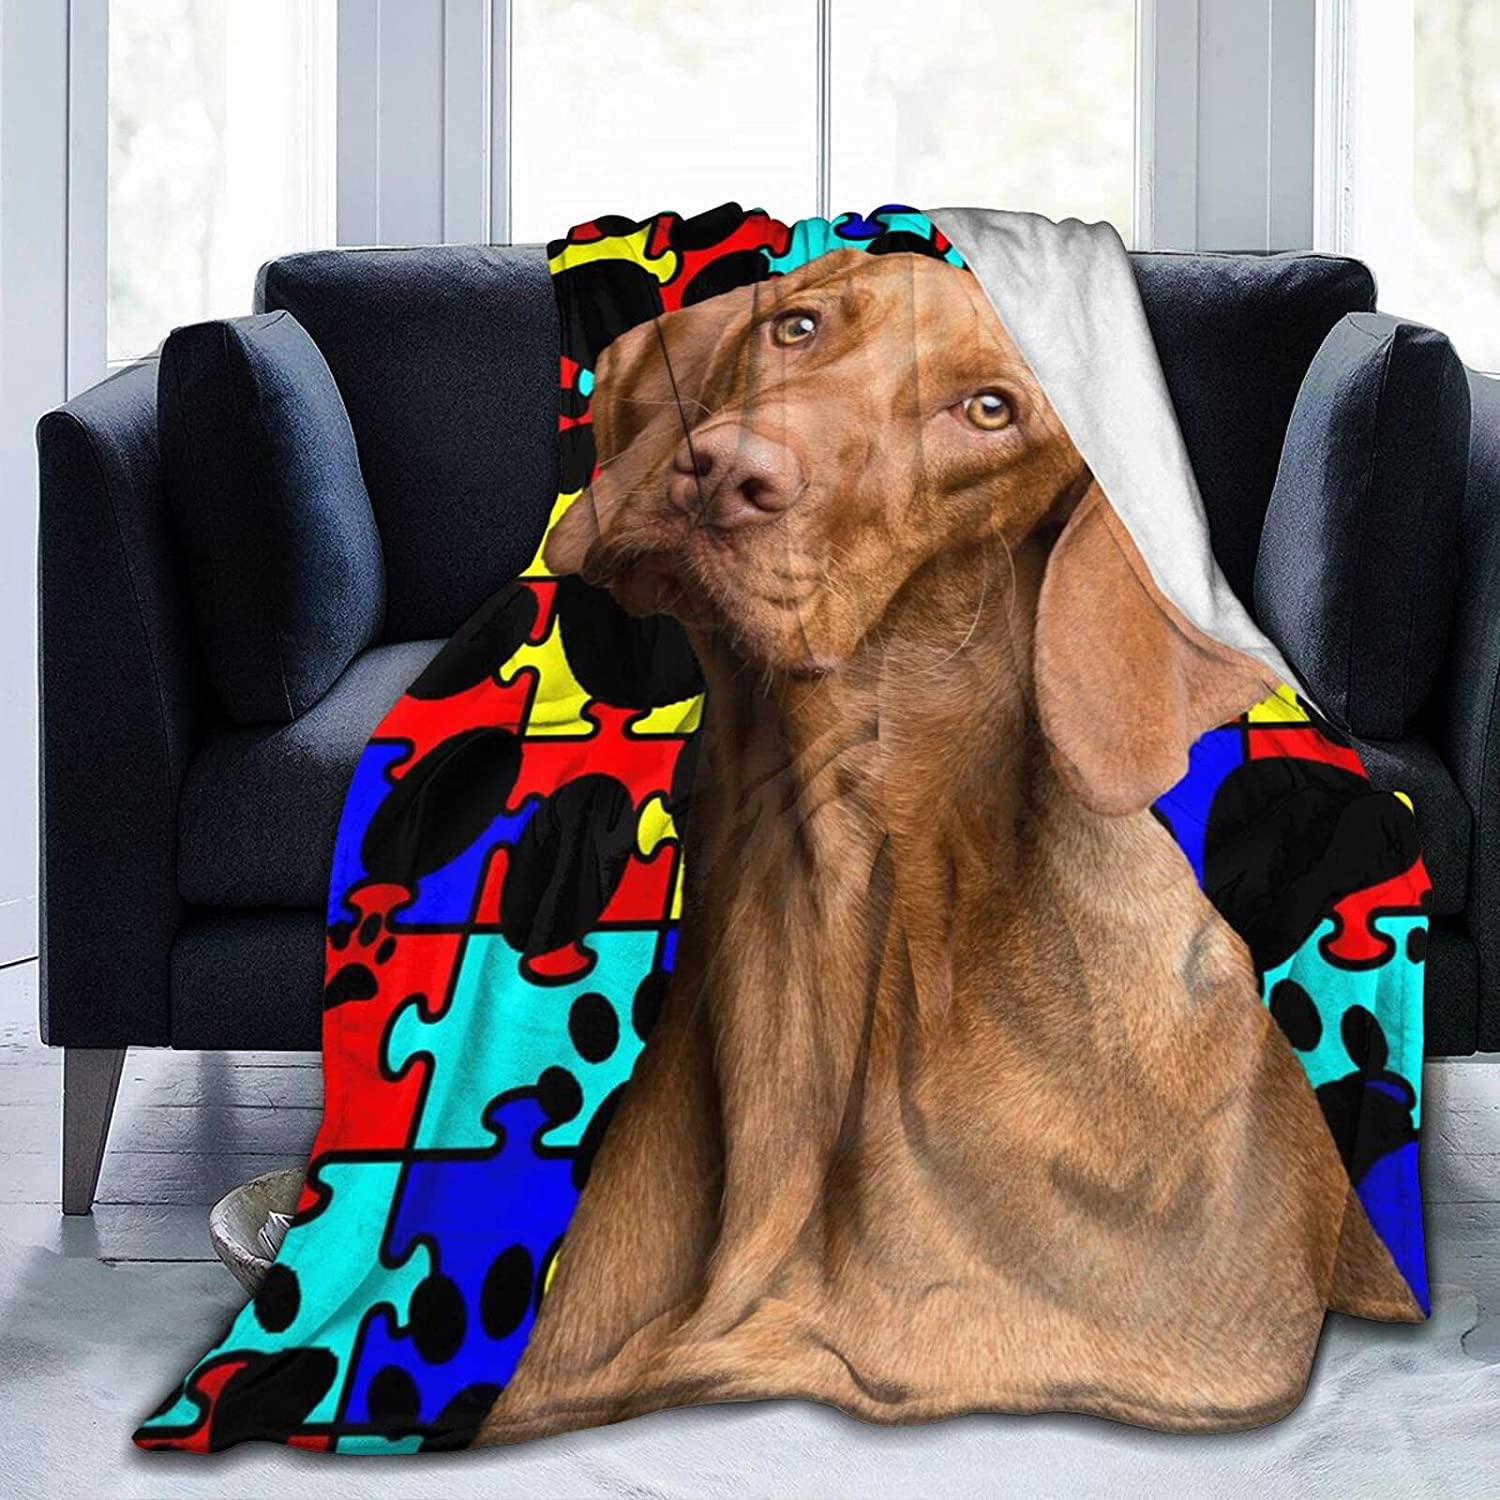 Gelipmart Dachshund Paw New mail order Autism Courier shipping free shipping Flannel Micro Throw Blanke Fleece